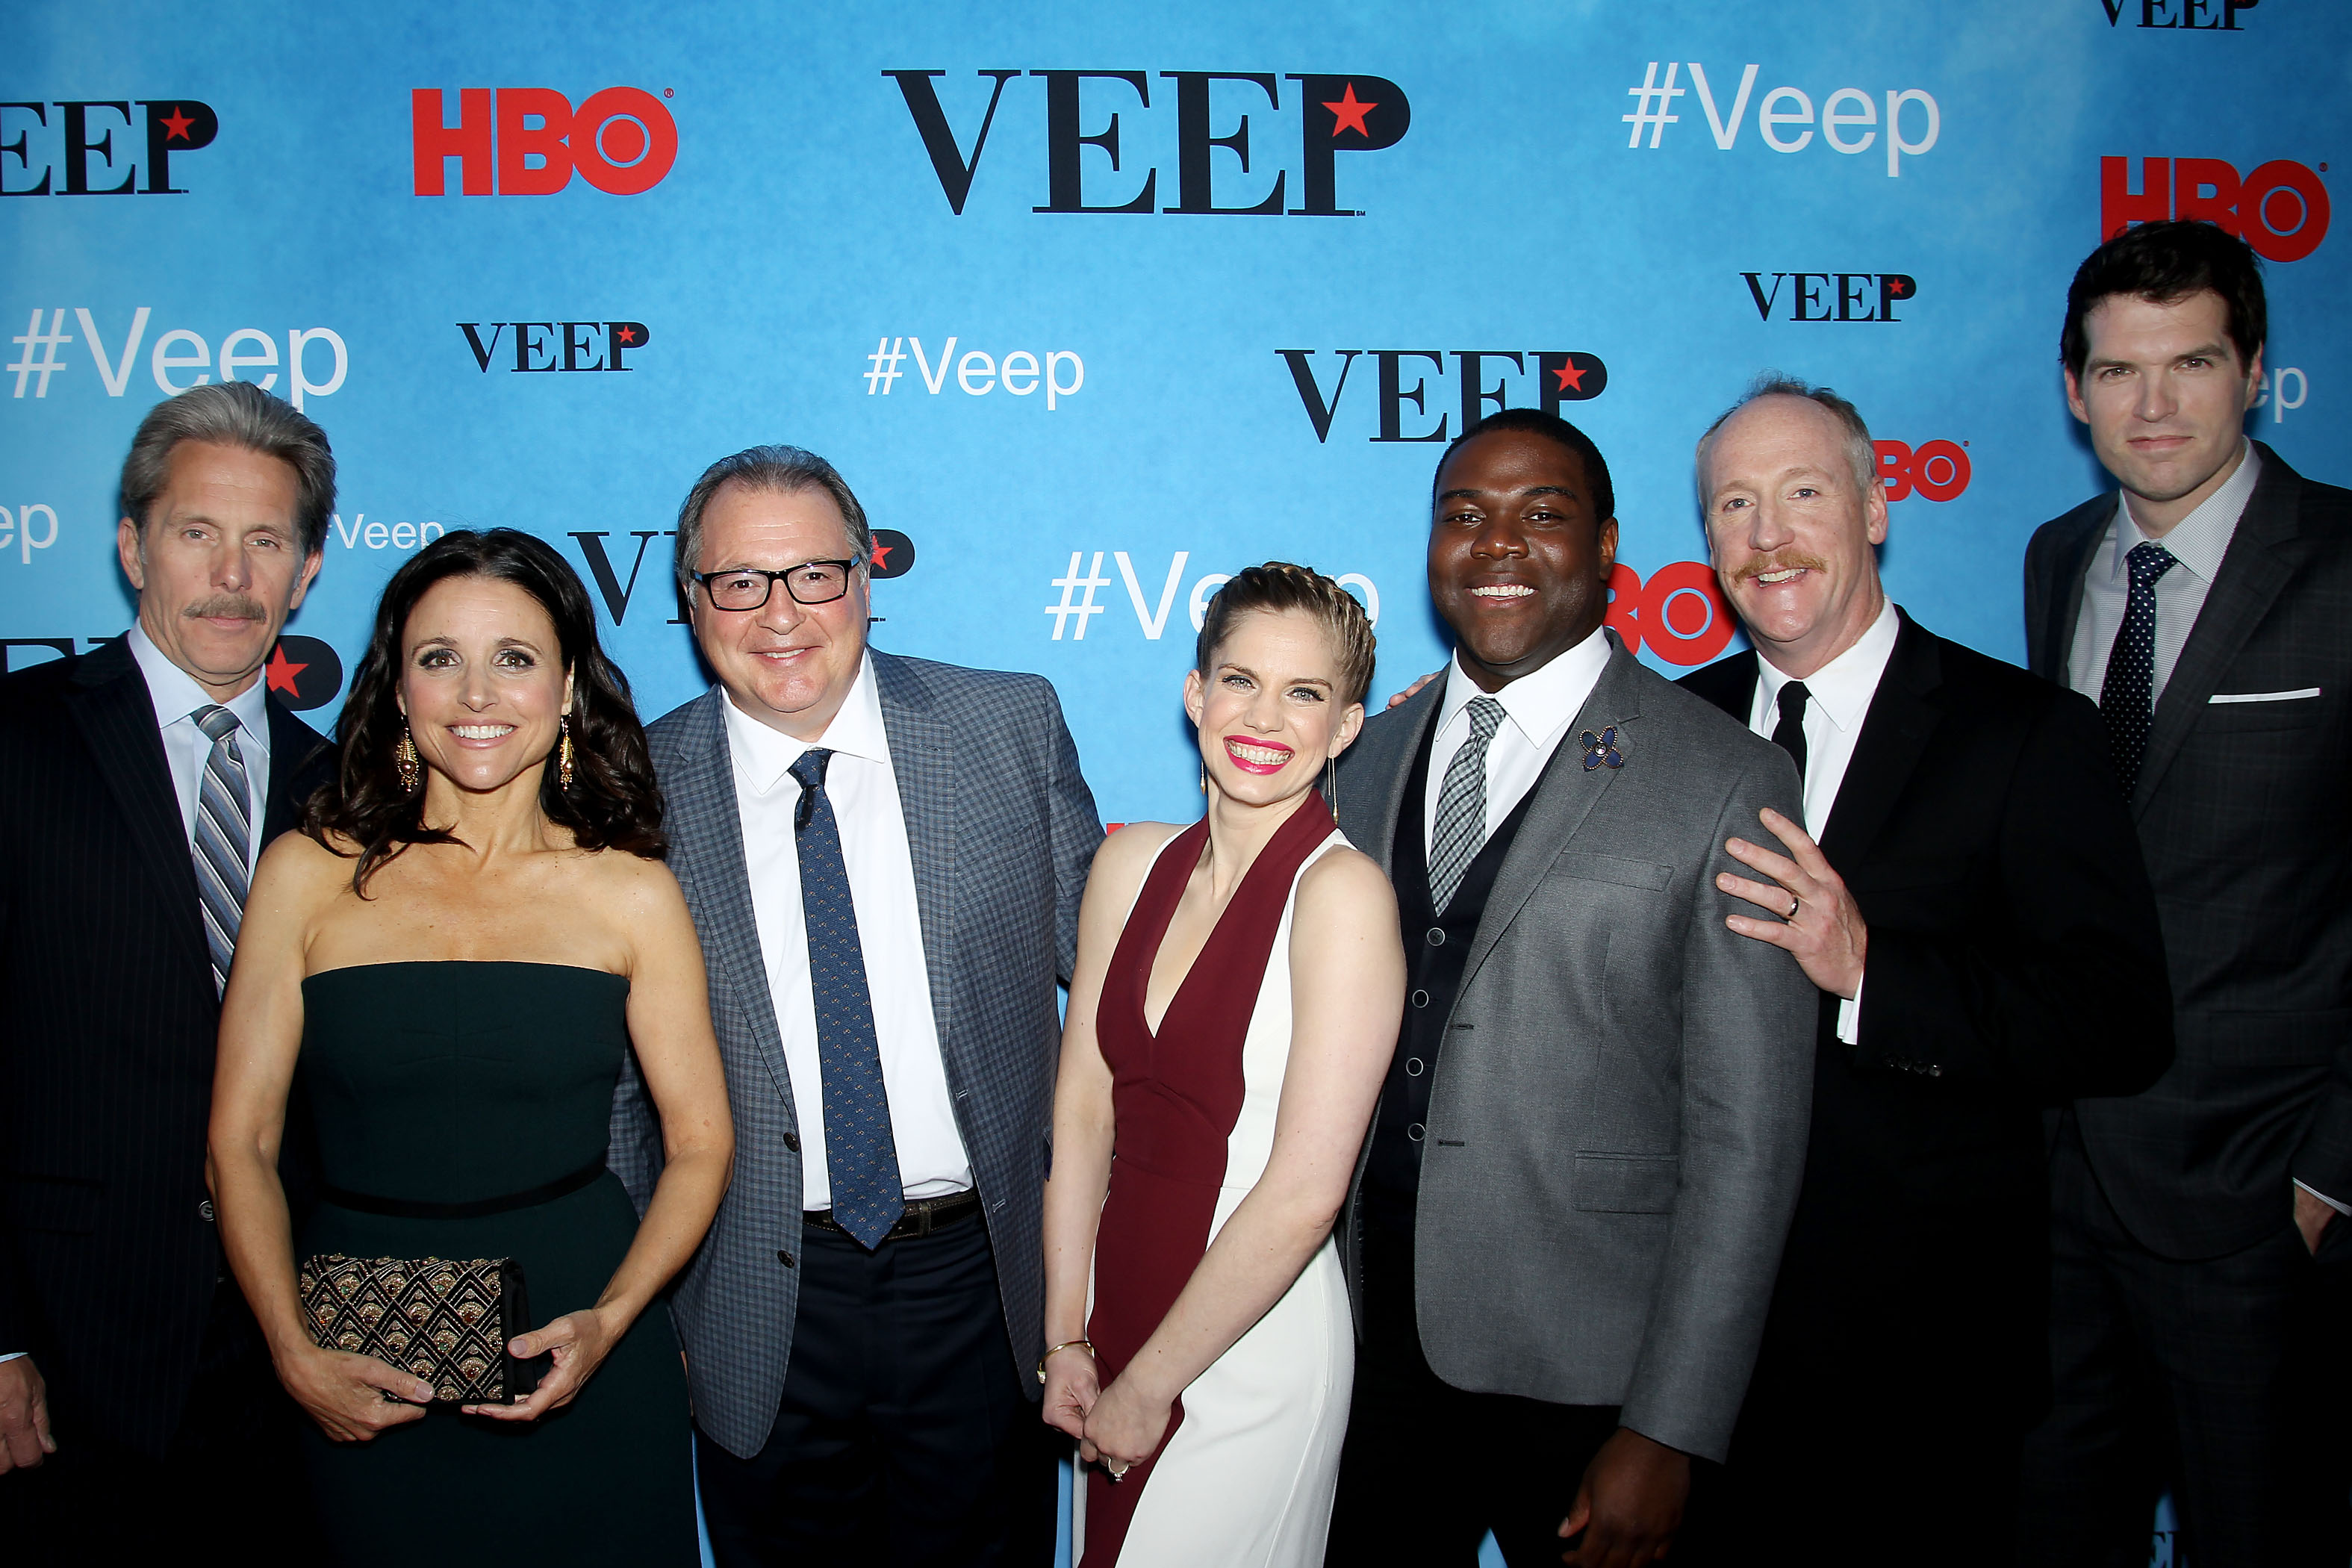 Veep\': How the Best Comedy Finally Won at the Emmys | IndieWire